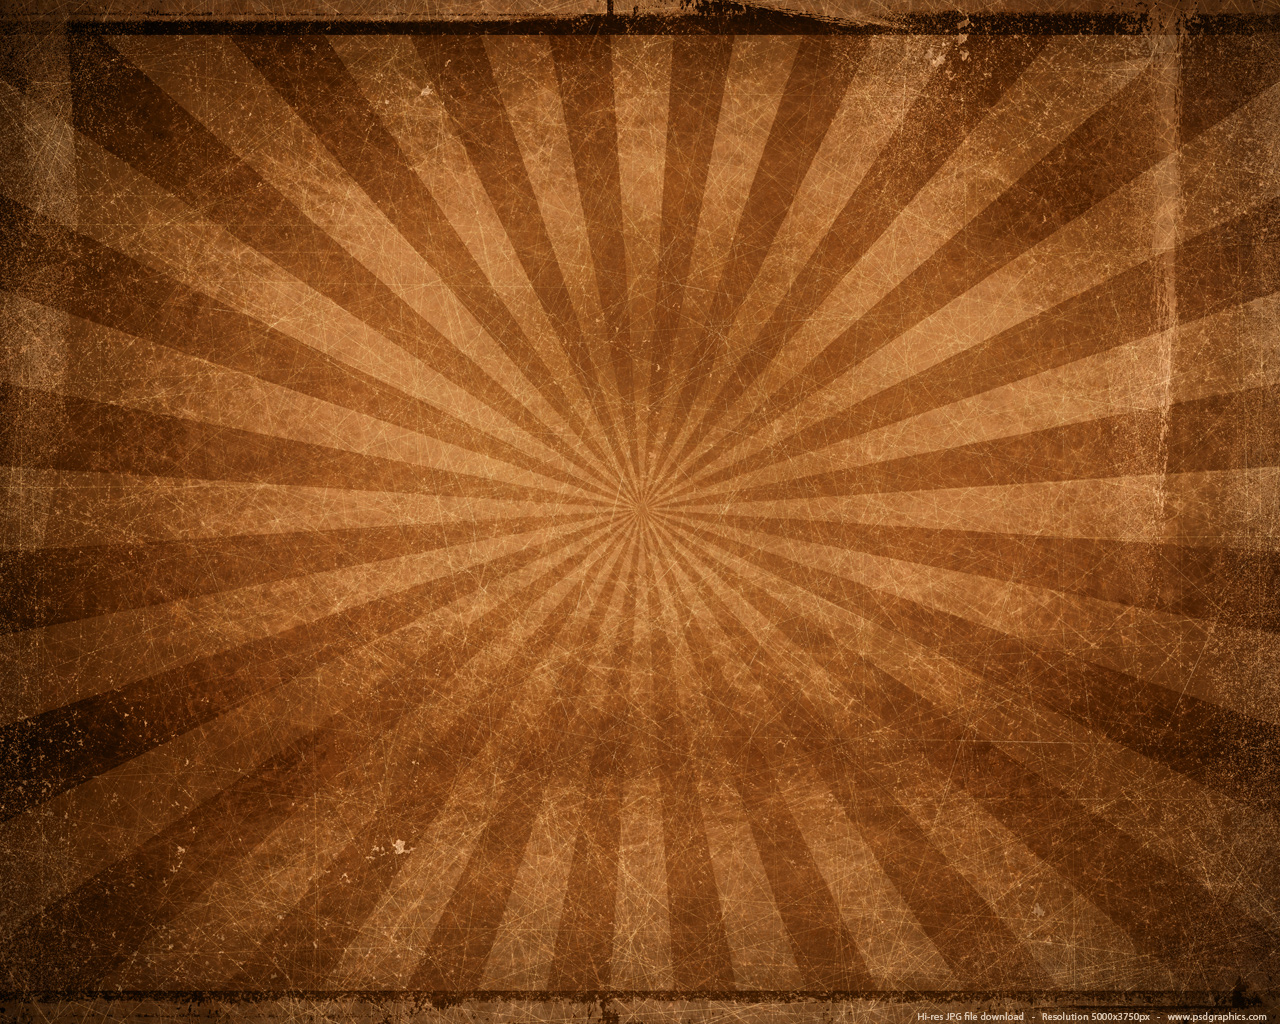 Medium size preview 1280x1024px Brown retro background 1280x1024